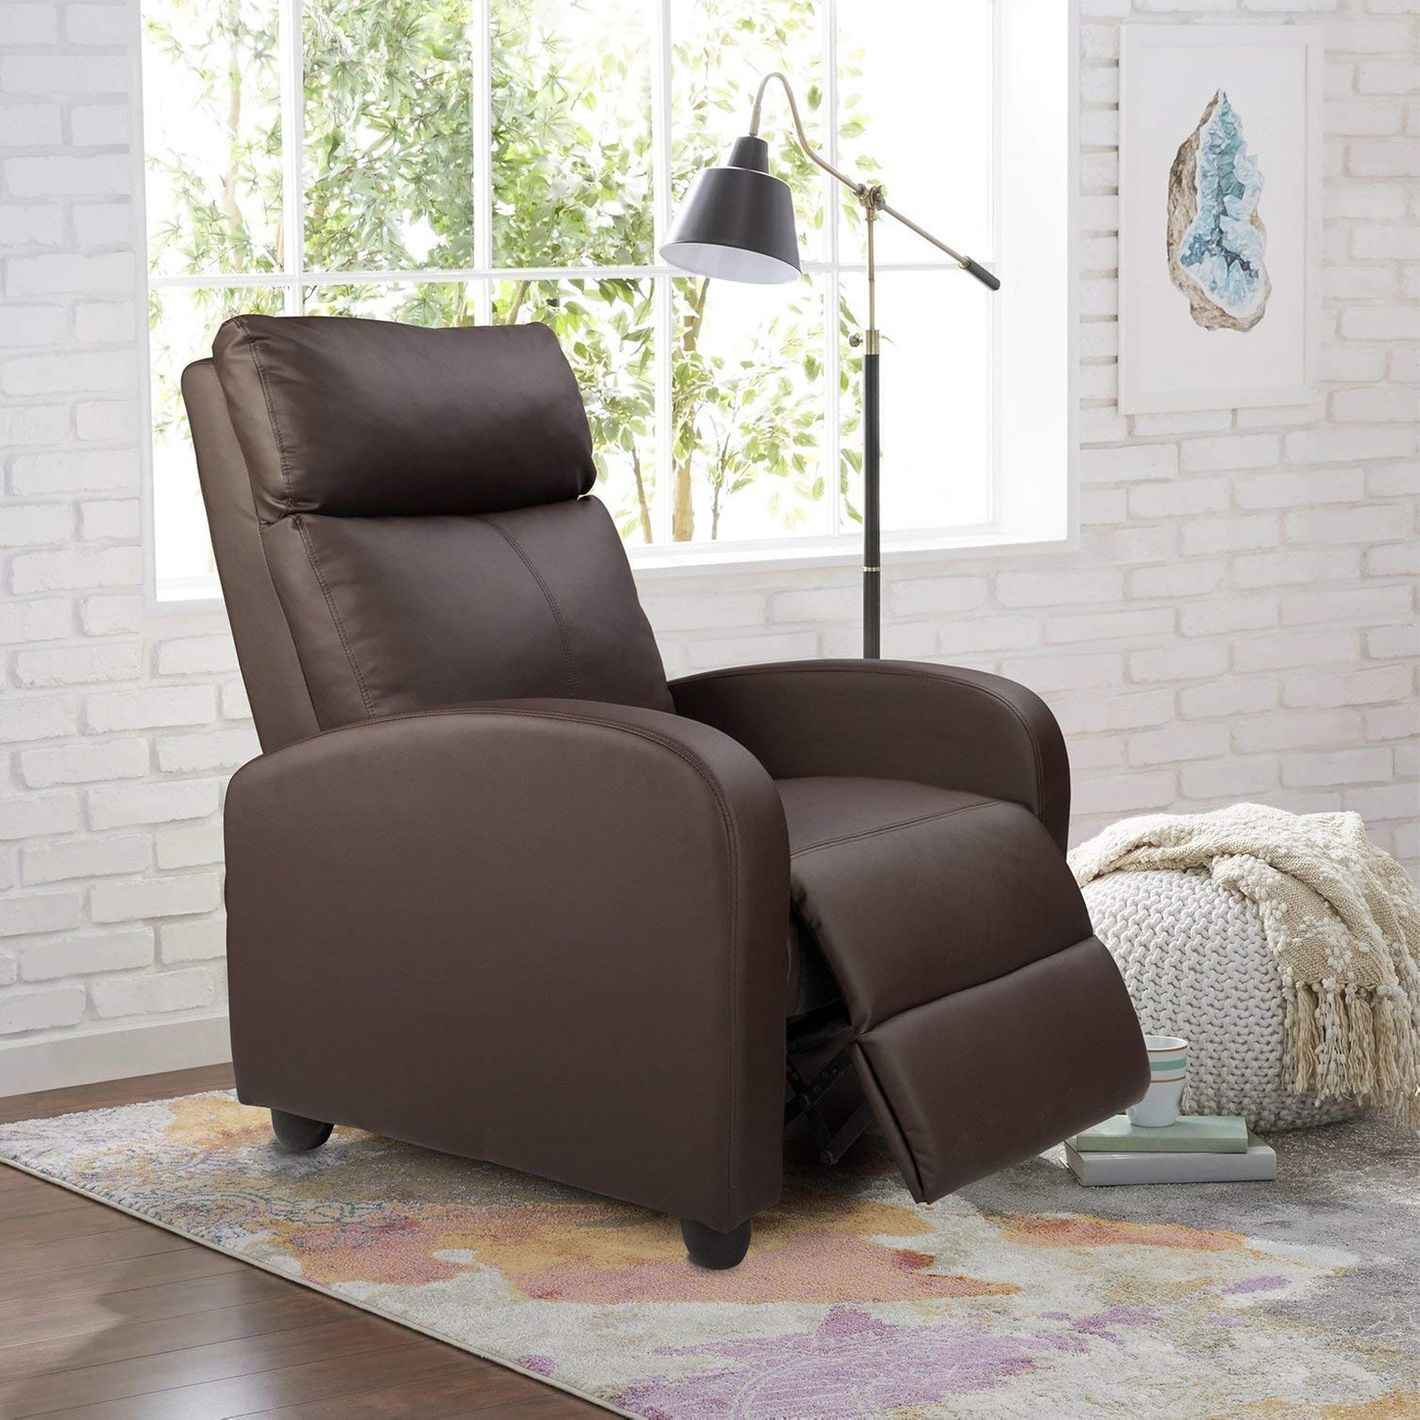 Homall Manual Recliner Chair